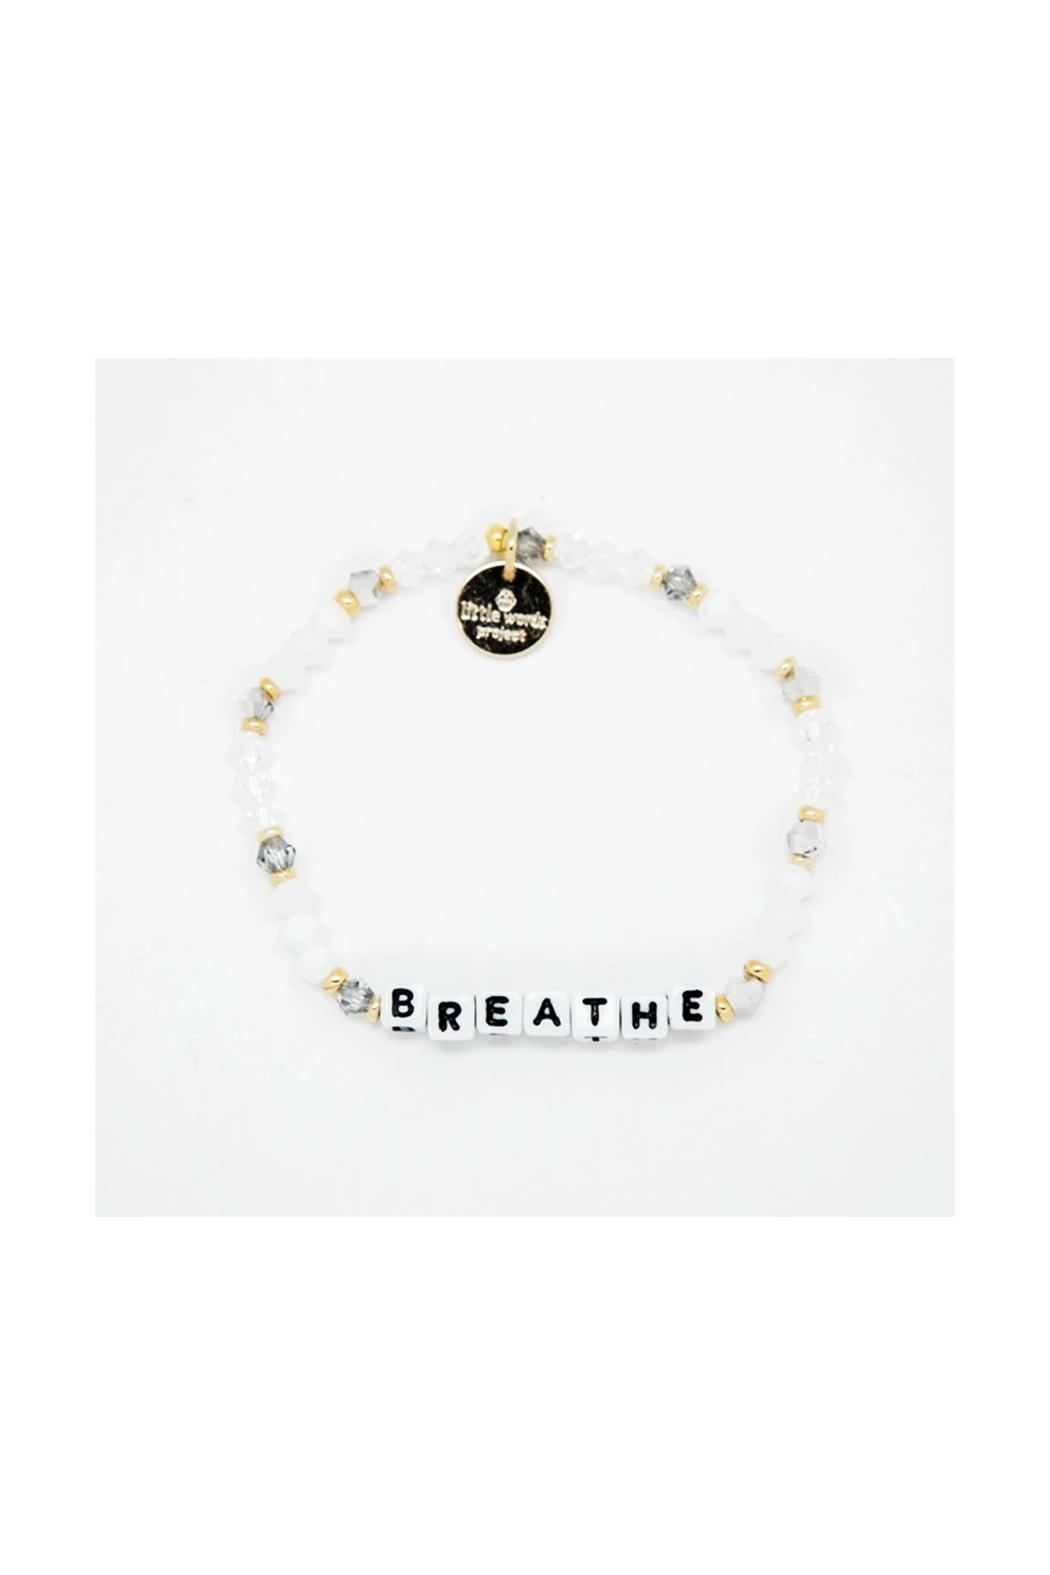 Private Label Little Words Project - Breathe - Main Image